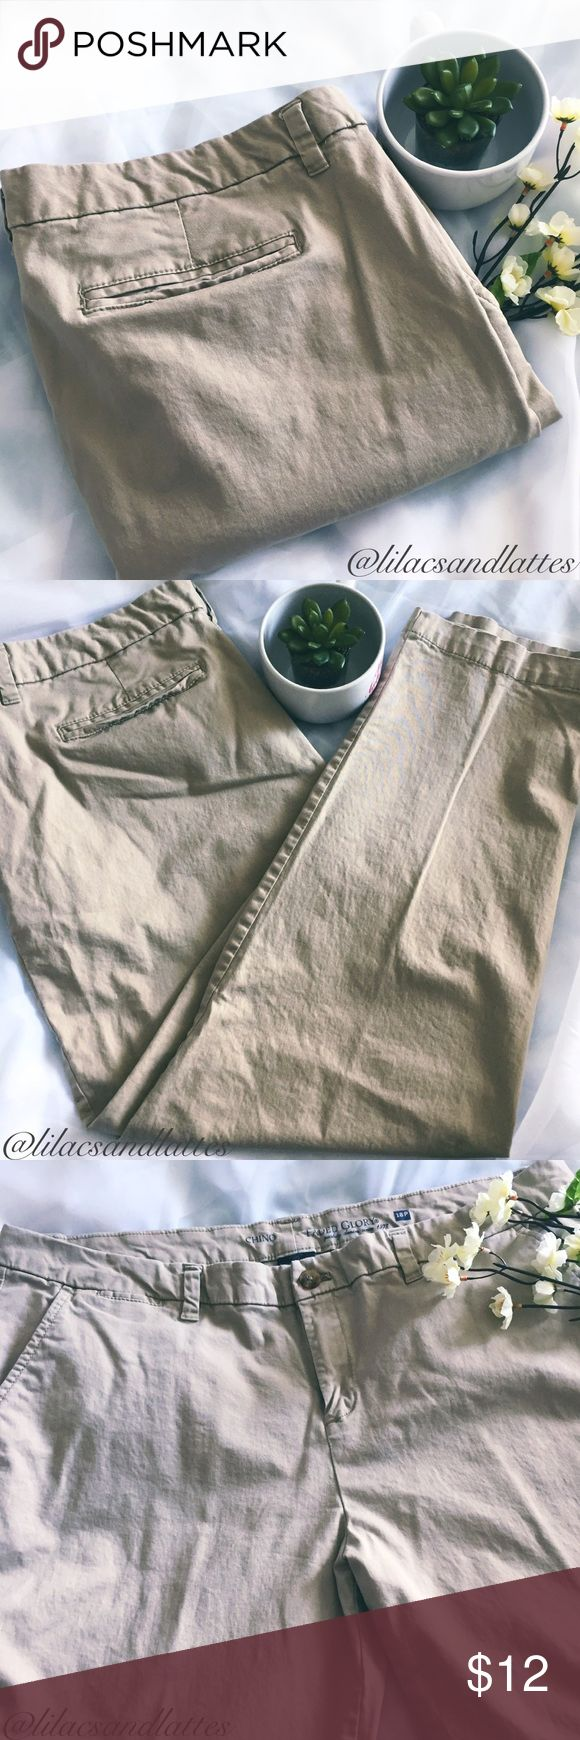 "{NWOT}Plus🌻Tan Chino Pants🌻18Petite {Faded Glory} Tan Chino Pants • NWOT • In Perfect Condition, No Flaws🌻Stretchy Material • 98% Cotton, 2% Spandex🌻Size 18Petite • 19.5"" waist, 11"" rise, 27.5"" inseam🌻Only reasonable offers accepted; please use chart in listing photos. No trades. 🛍Bundles of 3 or more listings save 10% on entire purchase🛍Thank you🌻 Faded Glory Pants"